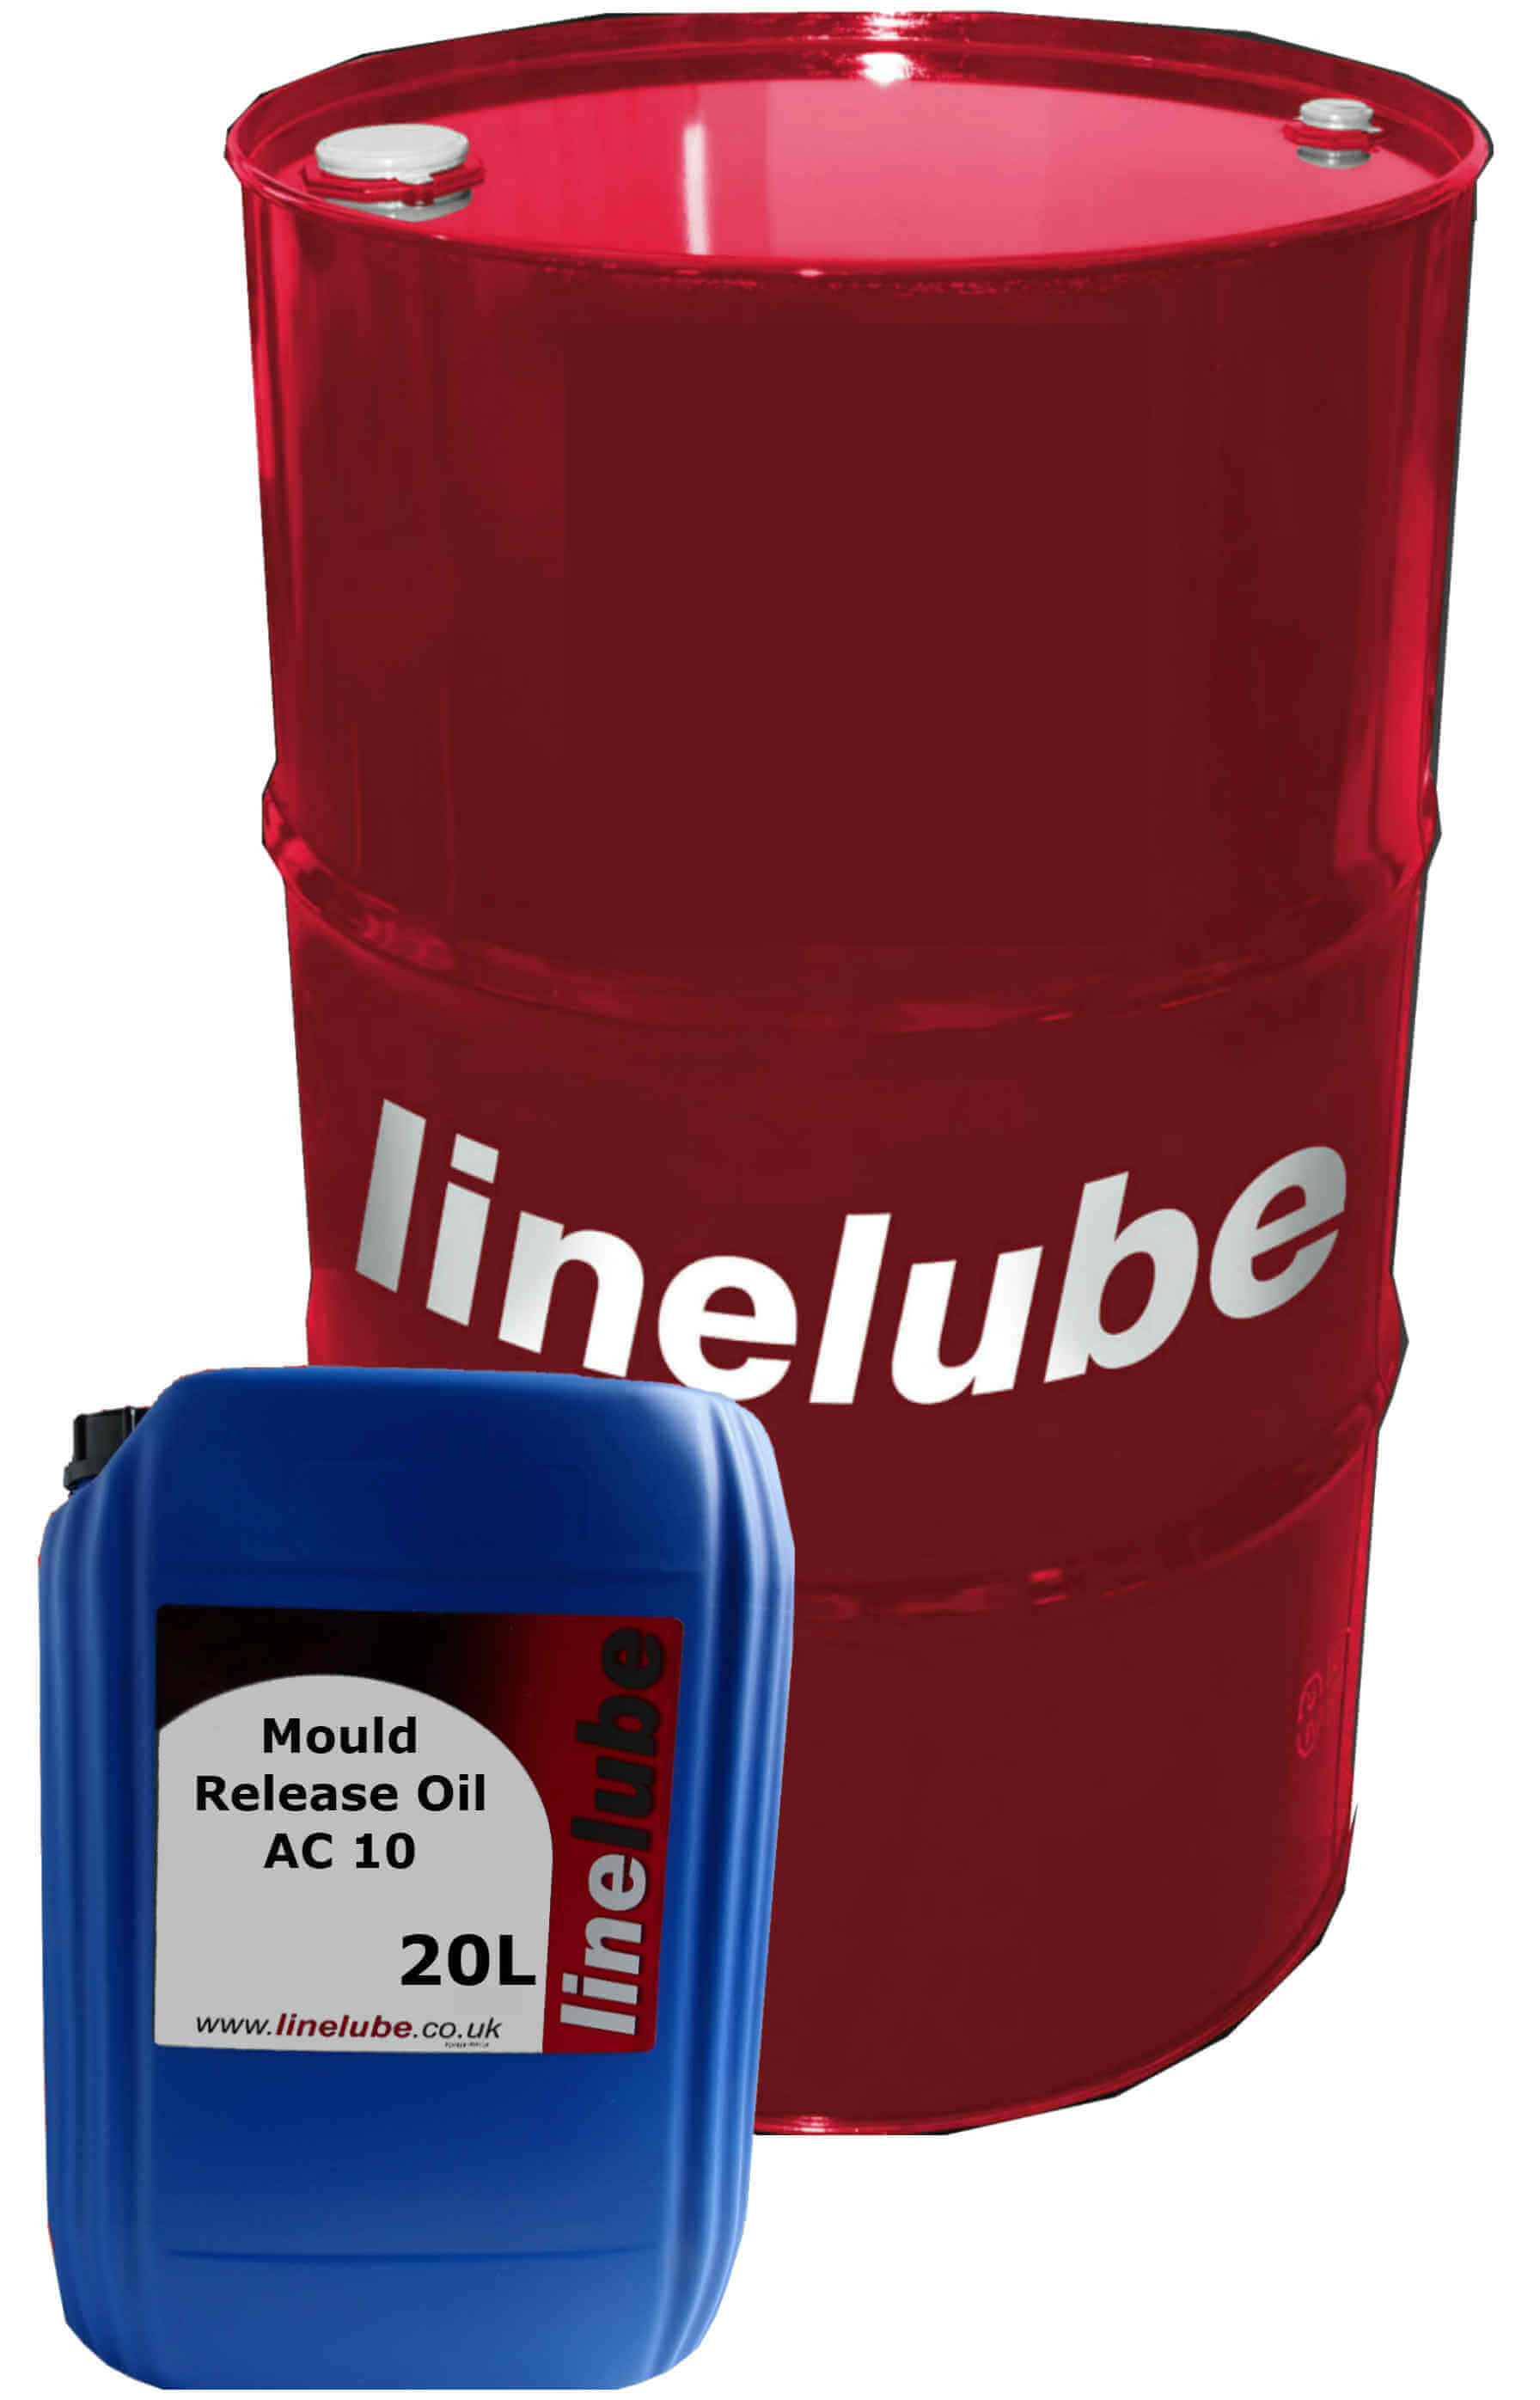 linelube Mould Release Oil AC 10